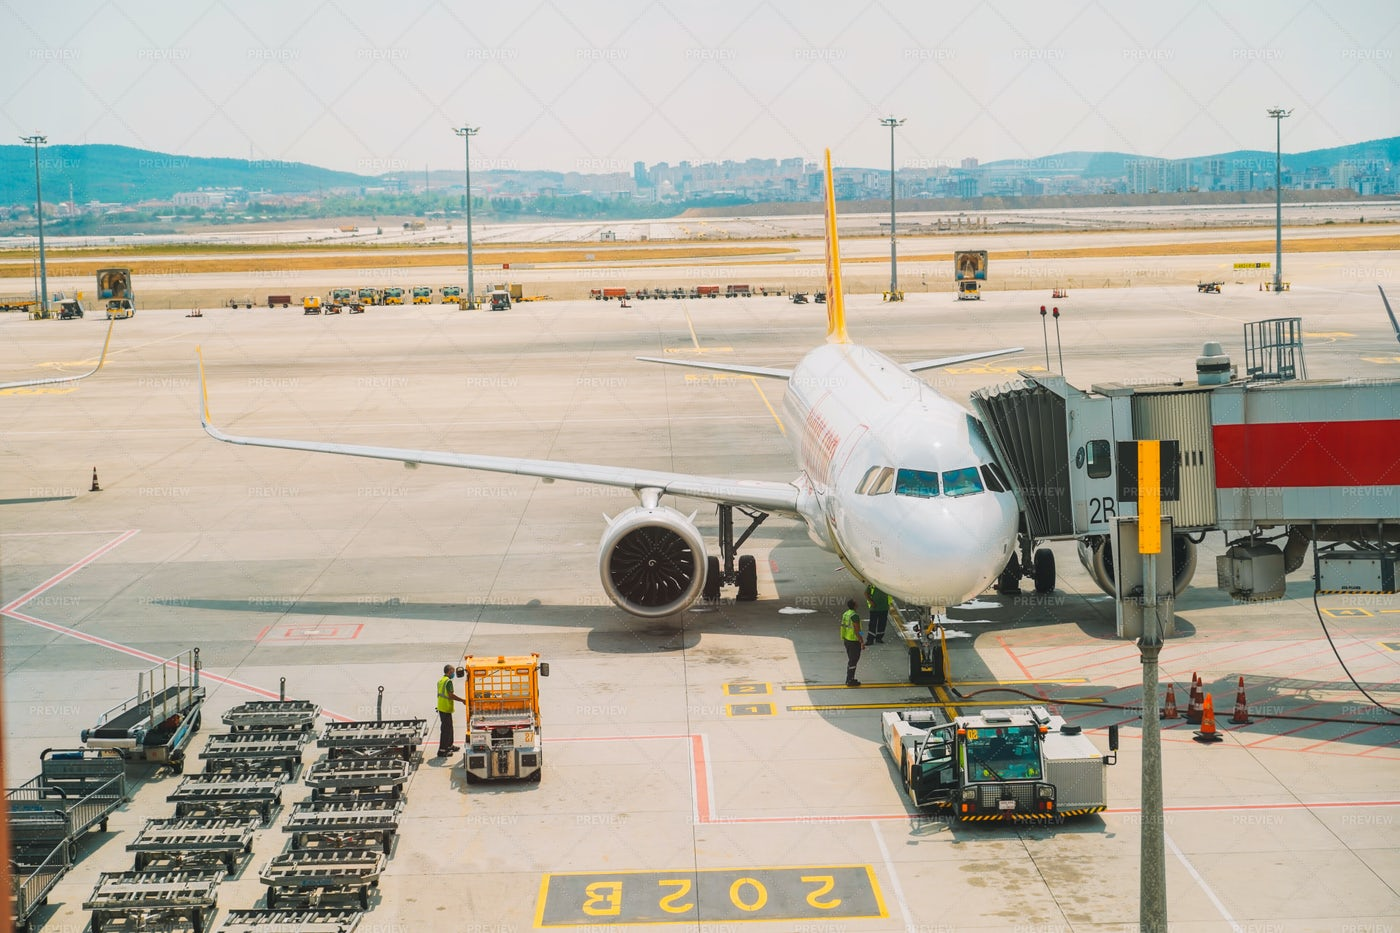 Airplane In Airport: Stock Photos